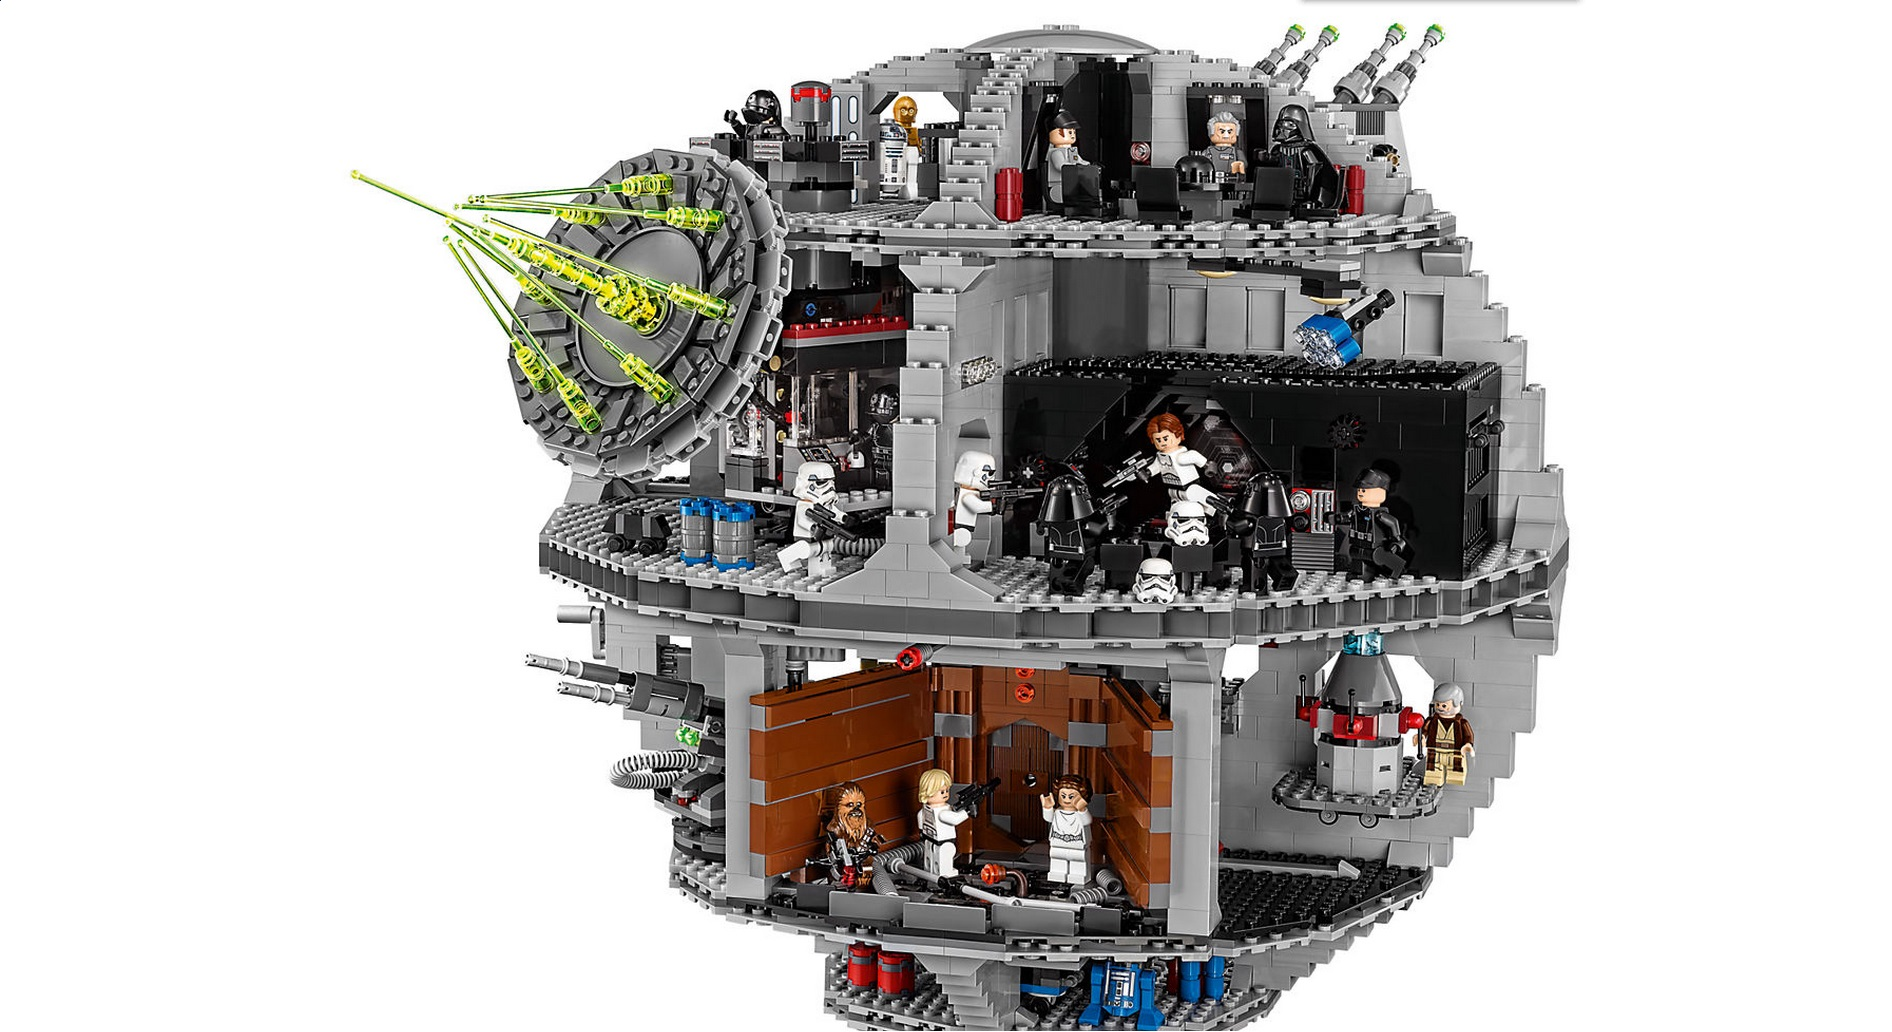 05063 4016pcs New Genuine Star War Force Waken UCS Death Star  Building Blocks Bricks Toys  Gifts compatible bricks 75159